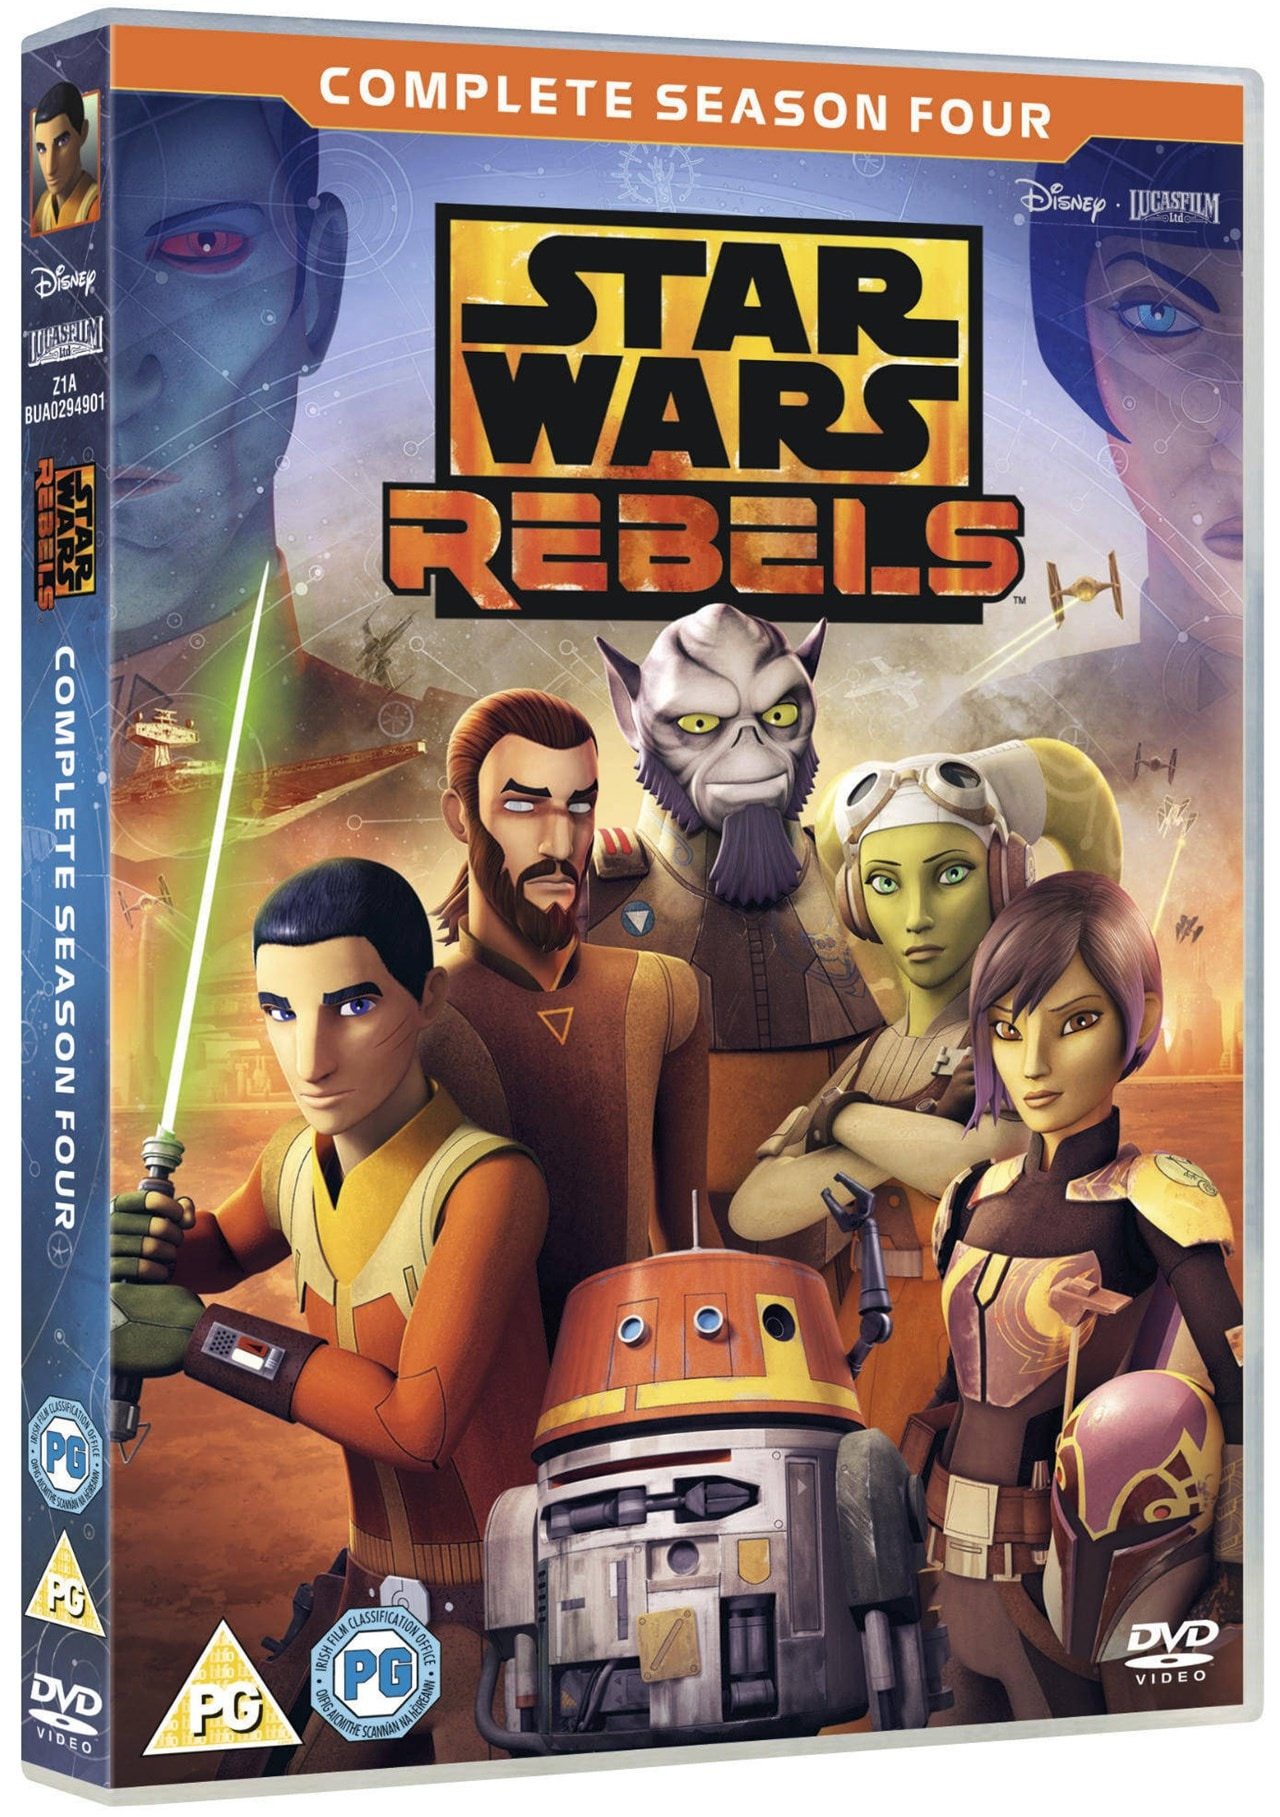 Star Wars Rebels: Complete Season 4 - 2